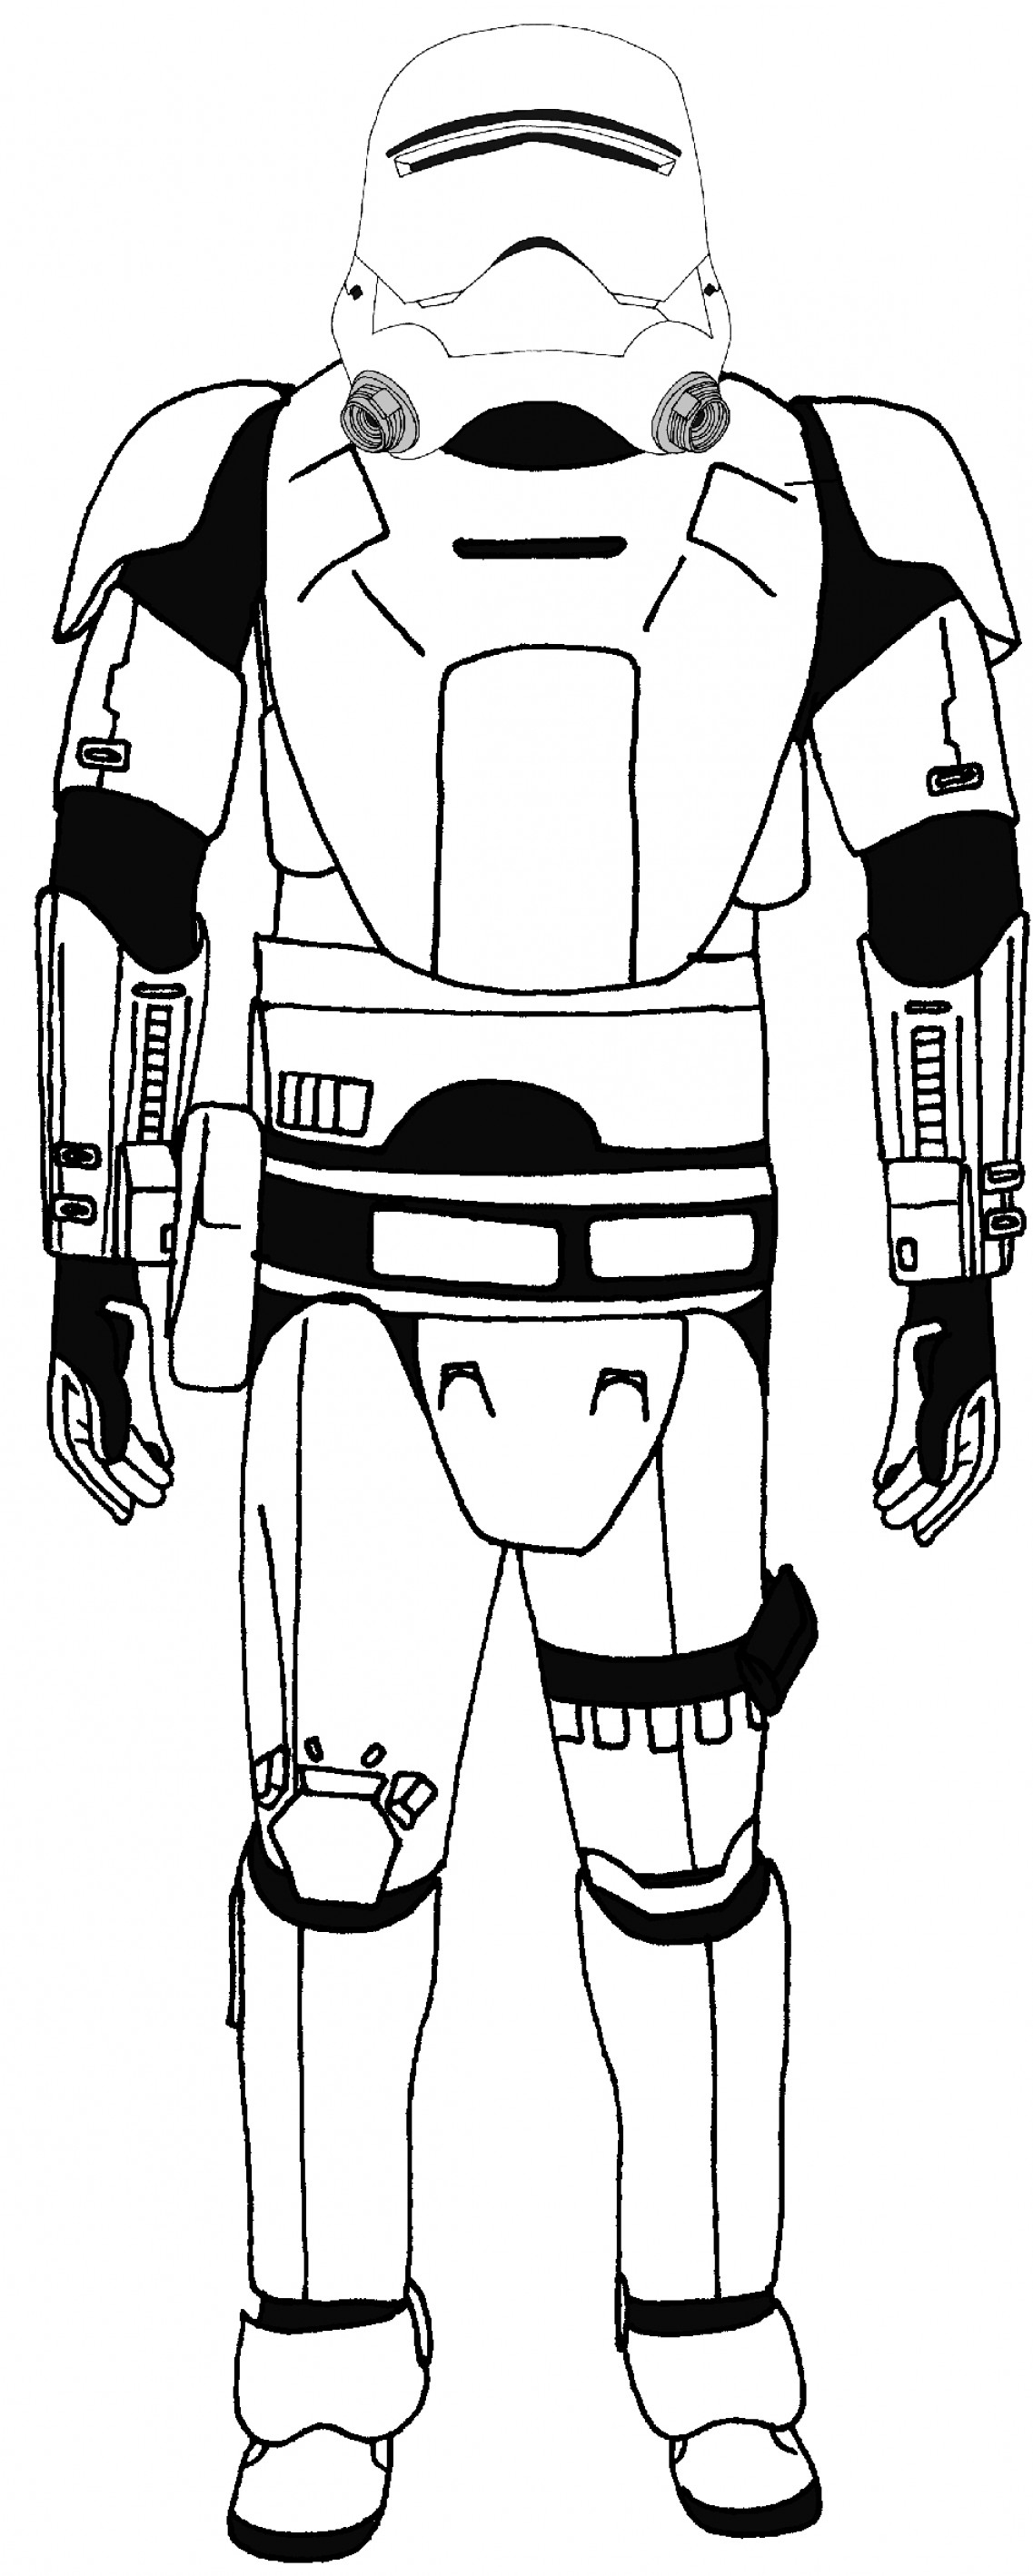 Stormtrooper Coloring Page Great Stormtrooper Coloring Page Gallery Ideas Soidergi